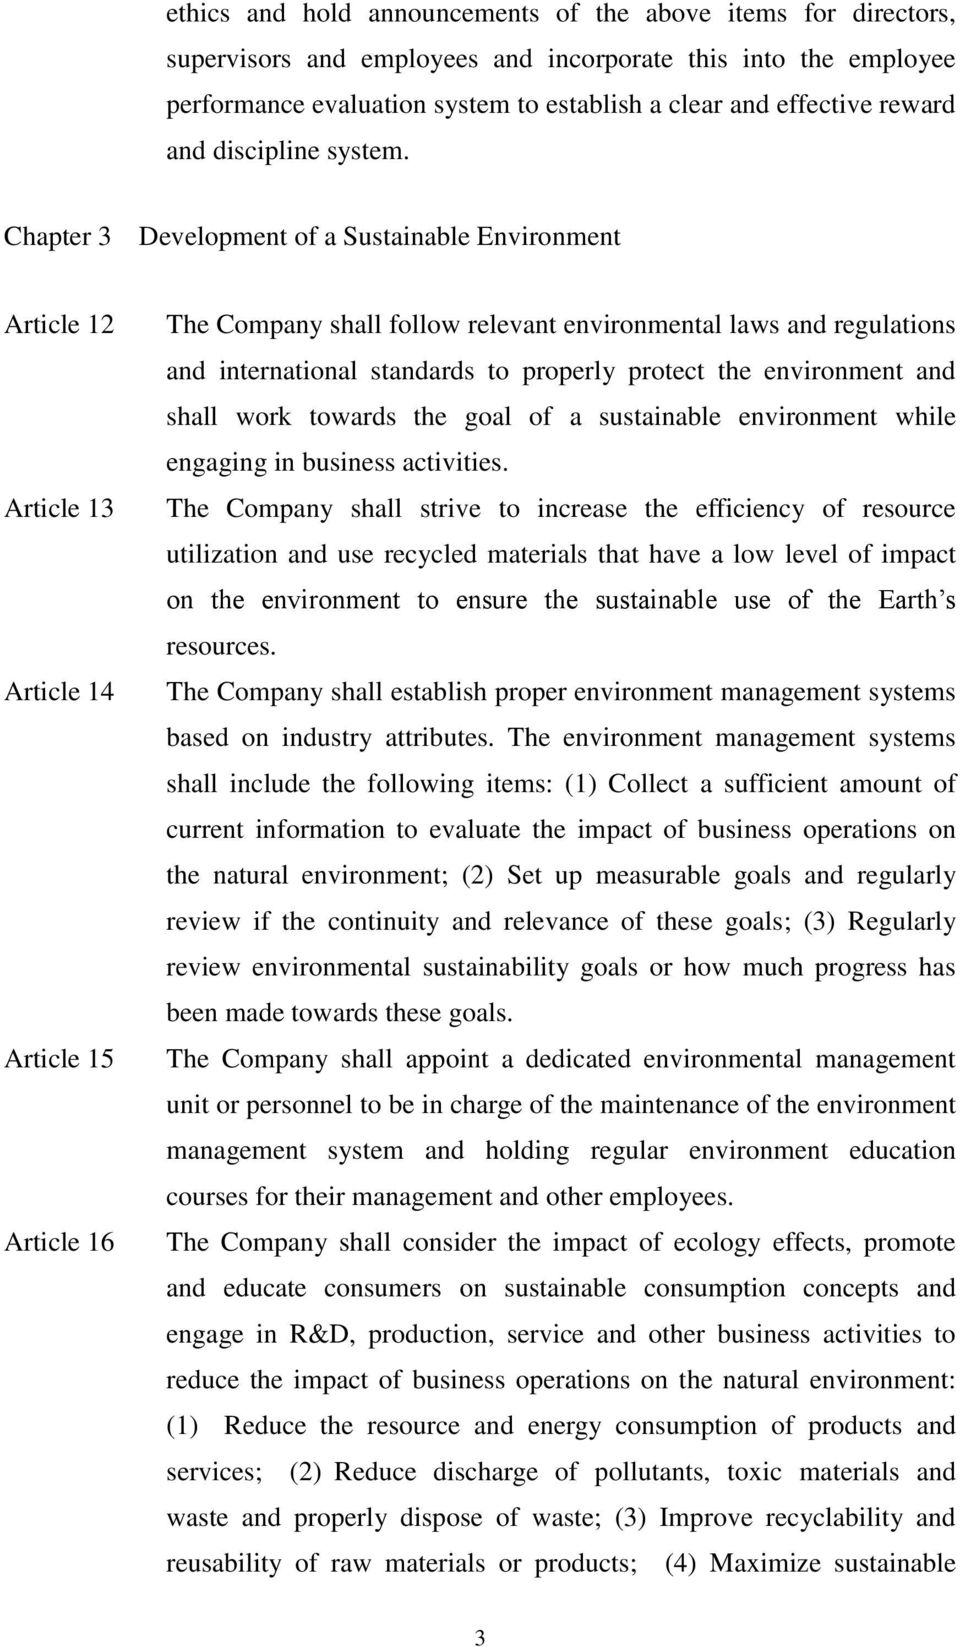 Chapter 3 Development of a Sustainable Environment Article 12 Article 13 Article 14 Article 15 Article 16 The Company shall follow relevant environmental laws and regulations and international